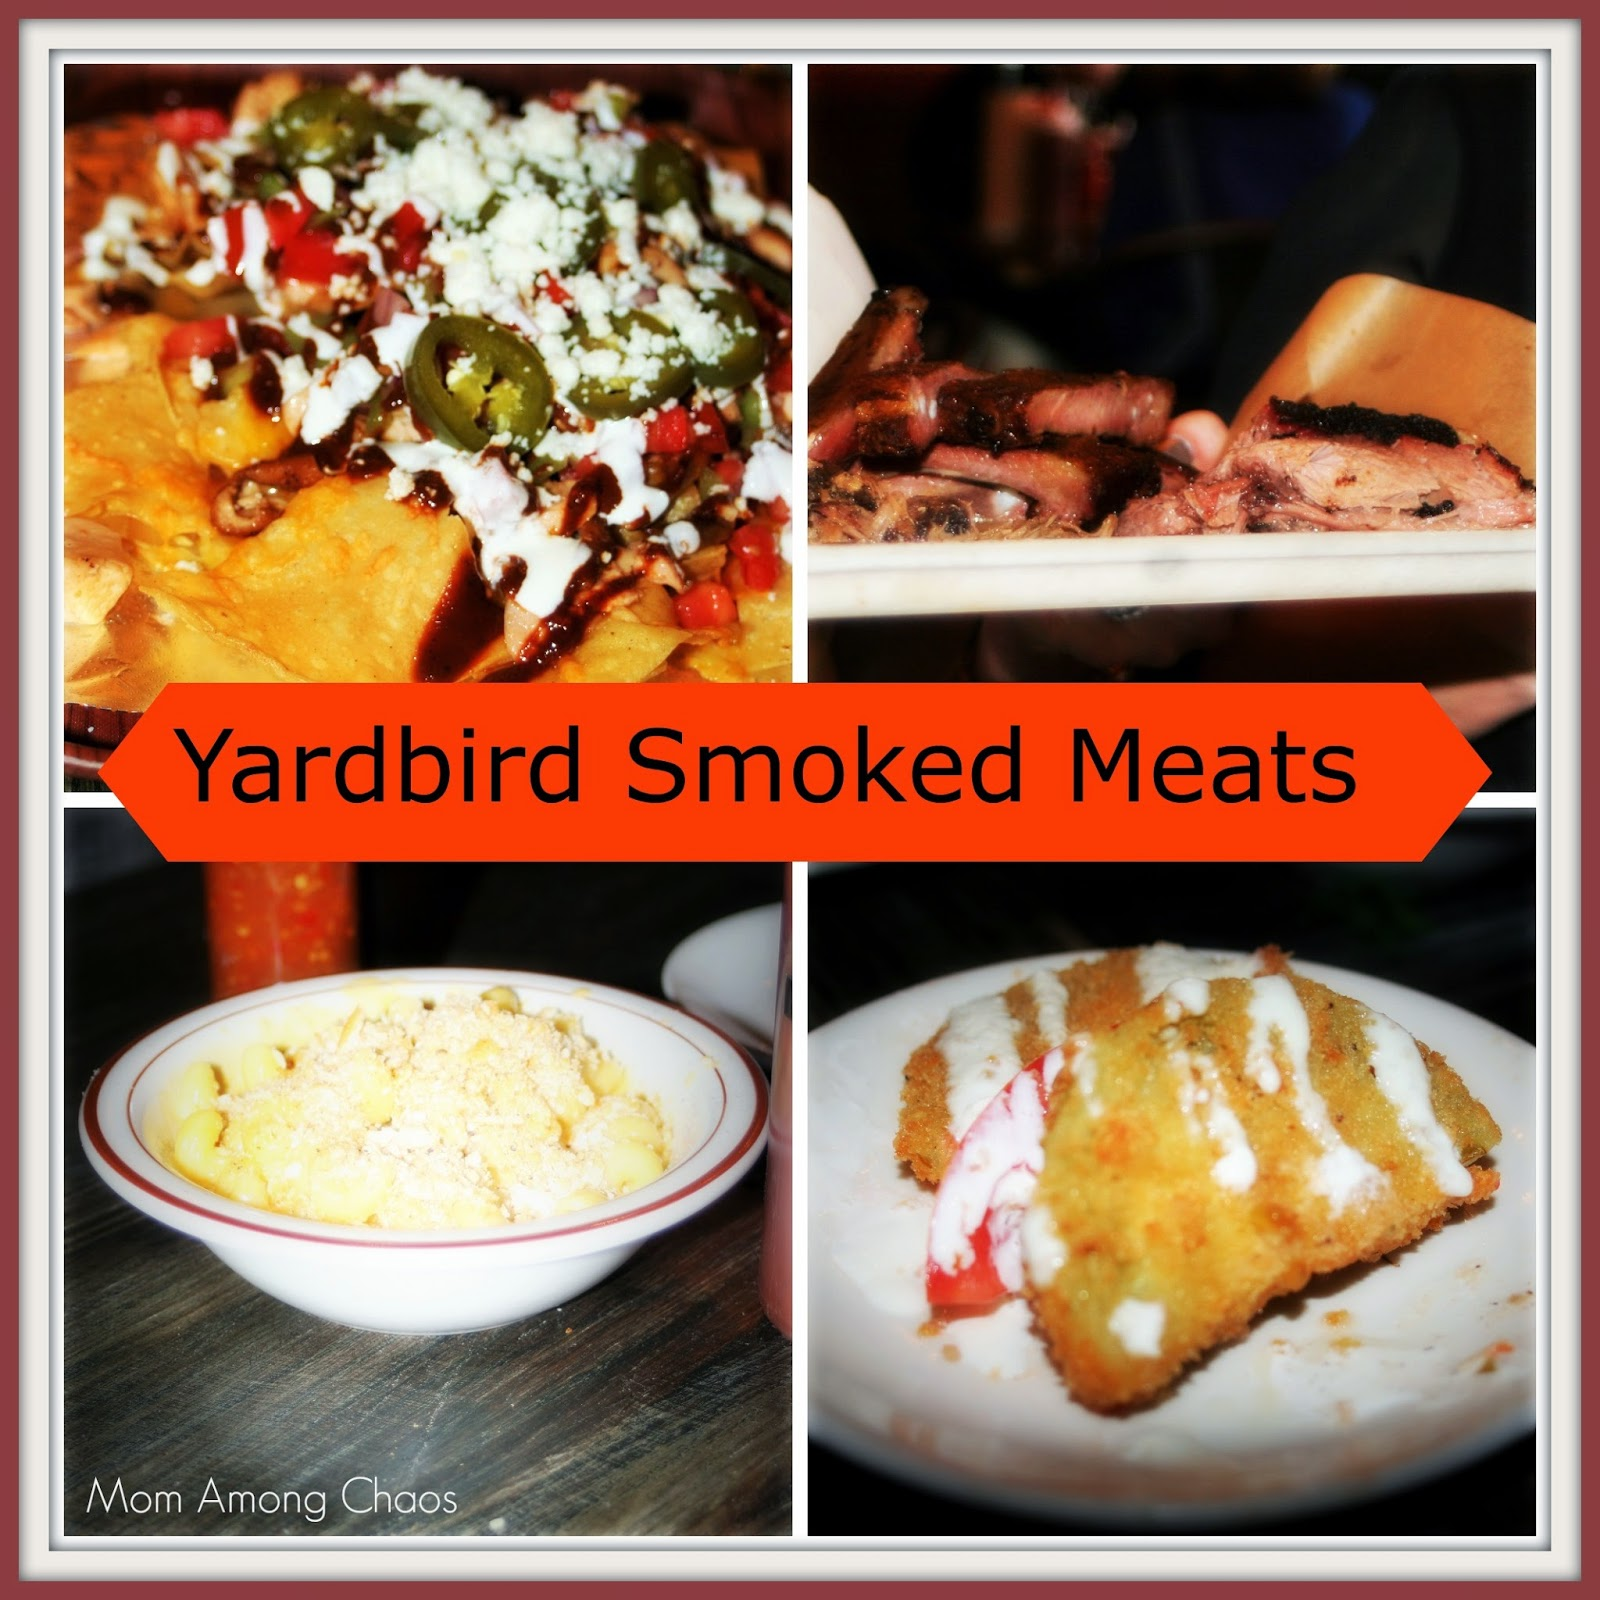 Yardbird Smoked Meats, BBQ, food, blogger, #Yardbirdcool, mac and cheese, restaurant